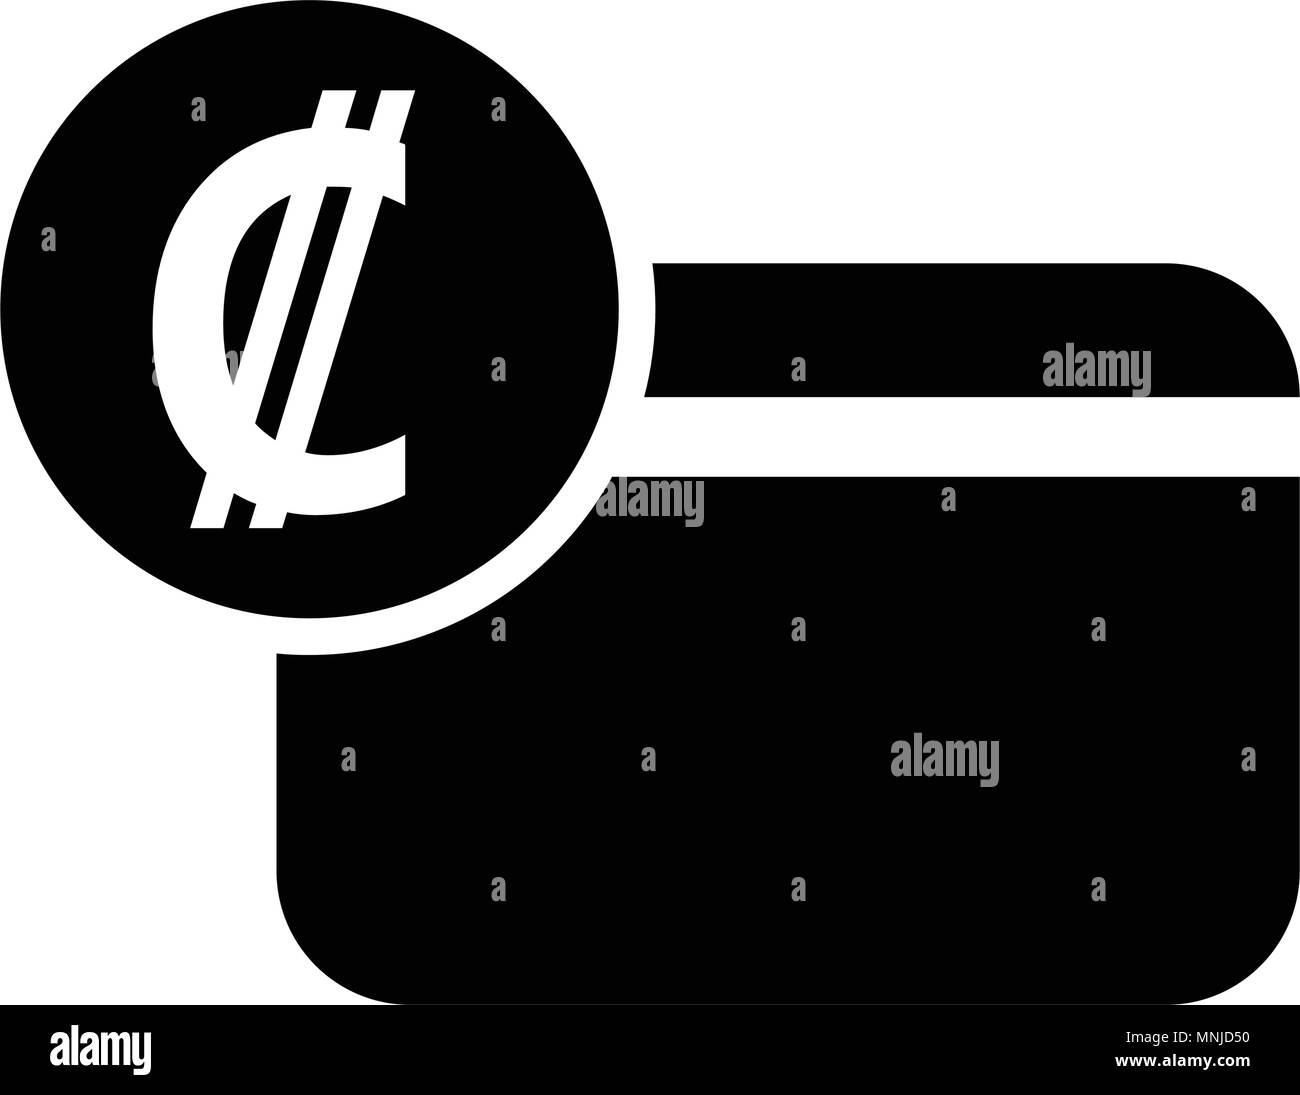 Costa Rica Colon Credit Card Icon Isolated On White Background